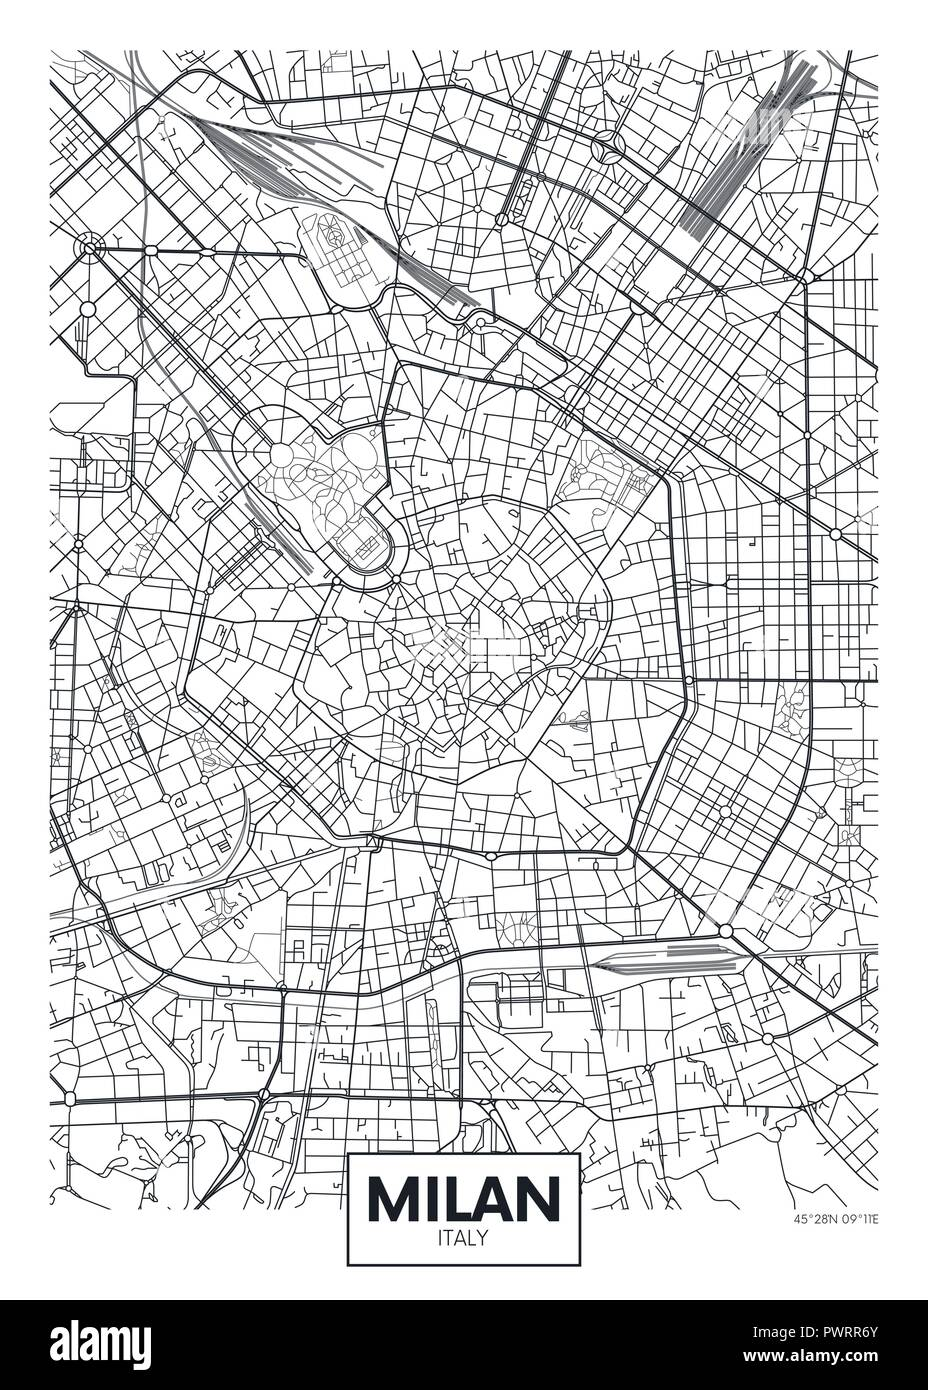 Detailed vector poster city map Milan detailed plan of the city, rivers and streets - Stock Vector